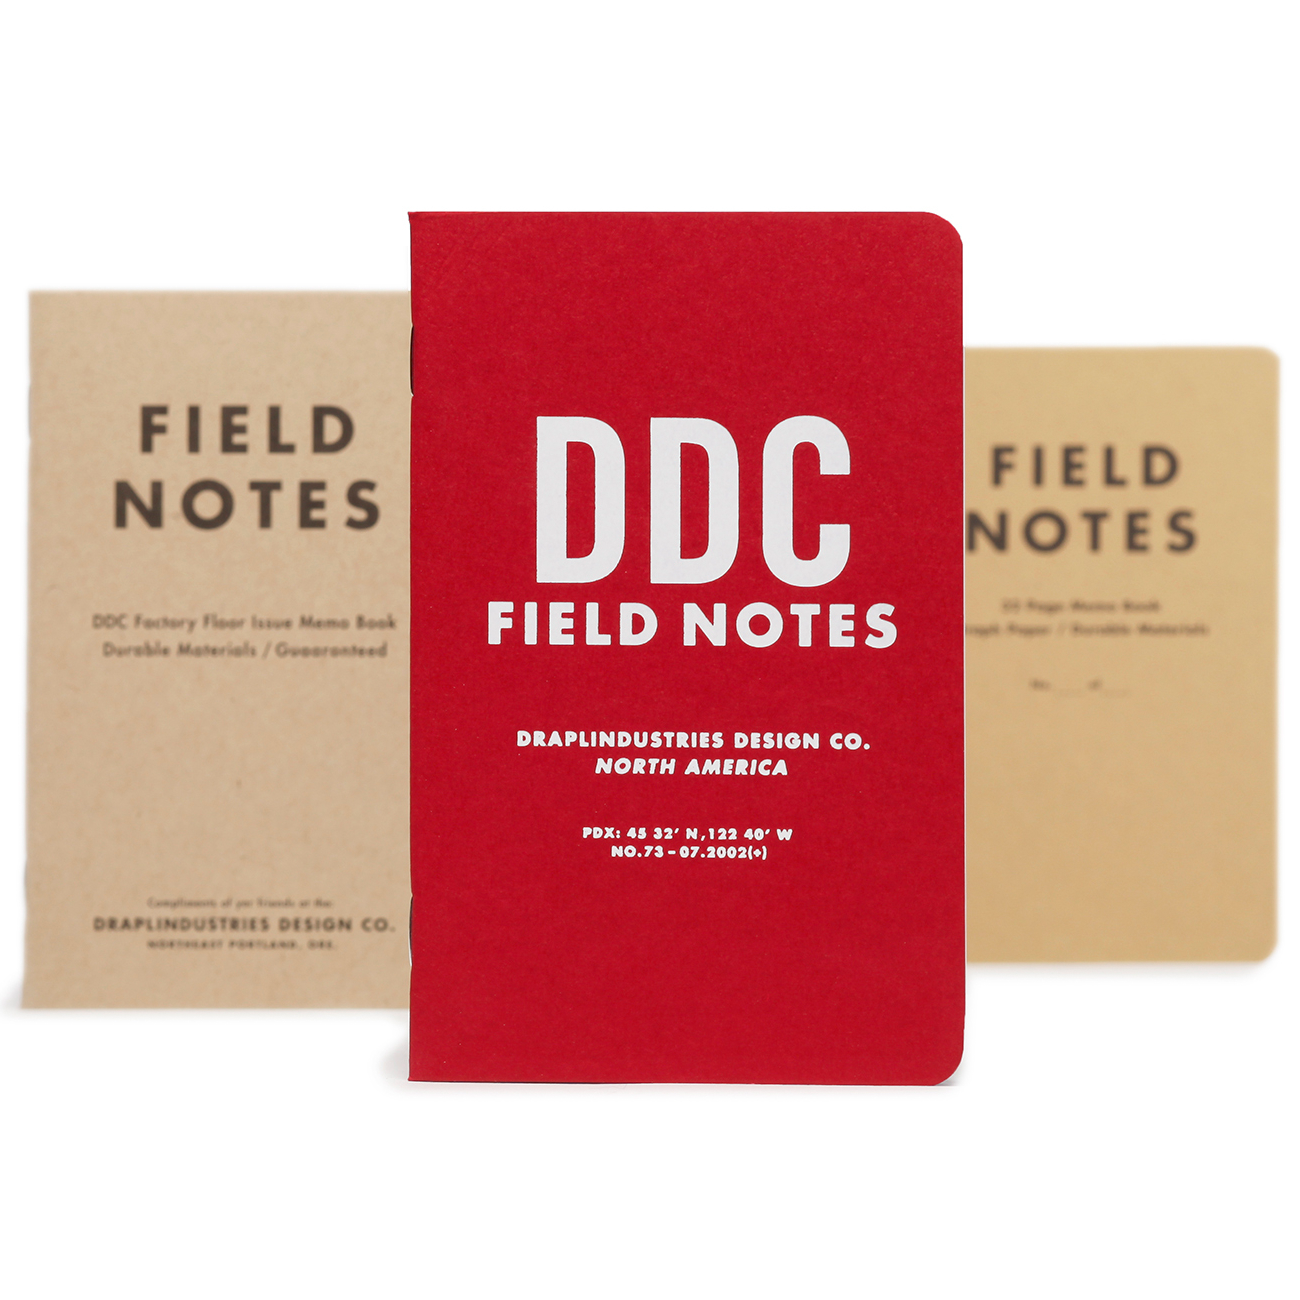 Field Notes, 10th Anniversary Edition, 3er Set Notizhefte,